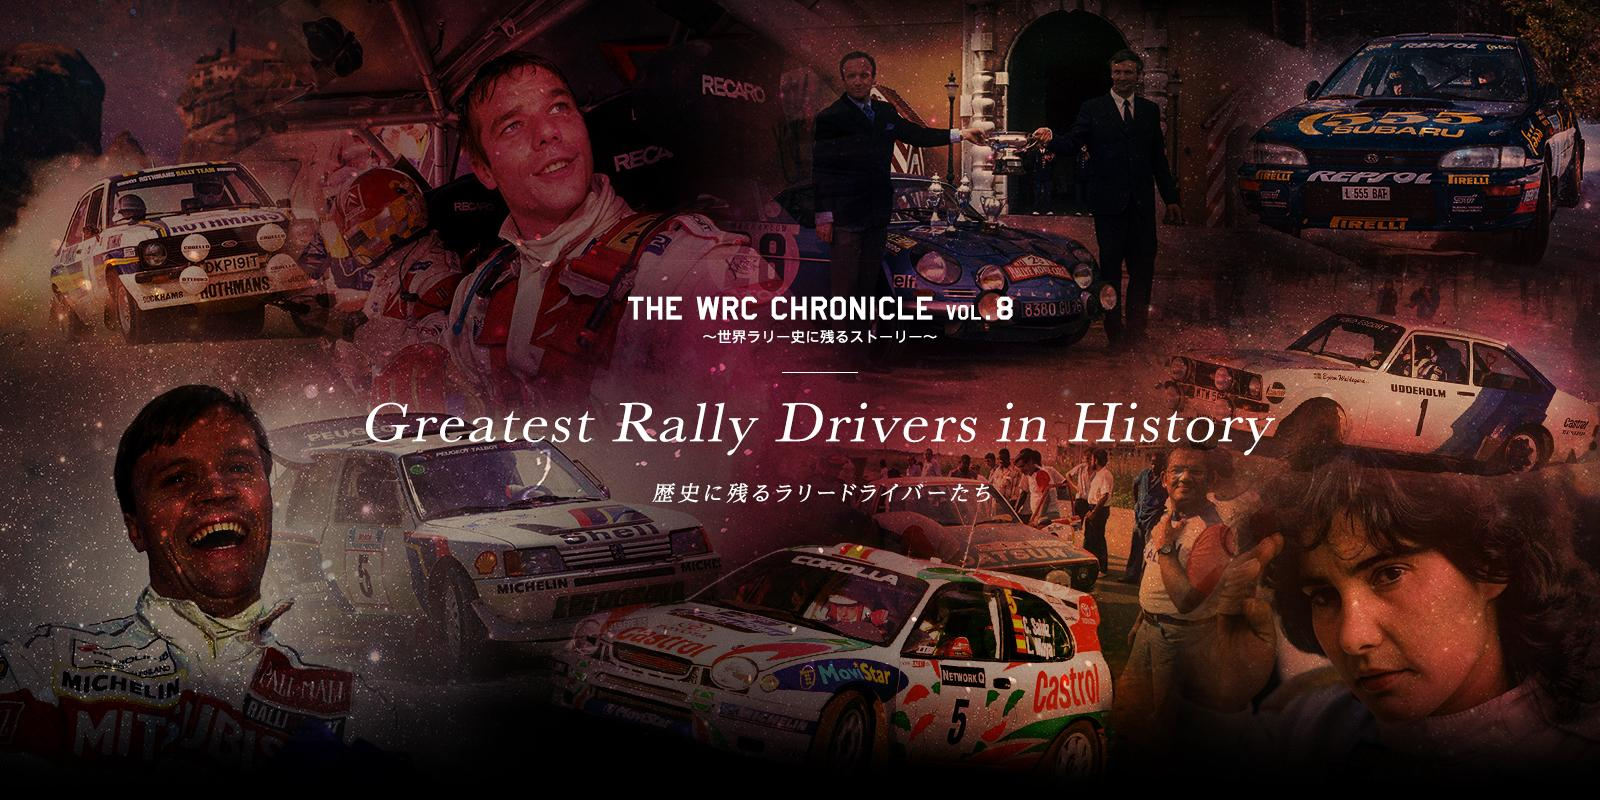 Greatest Rally Drivers in History 〜歴史に残るラリードライバーたち〜 | The WRC Chronicle vol.8